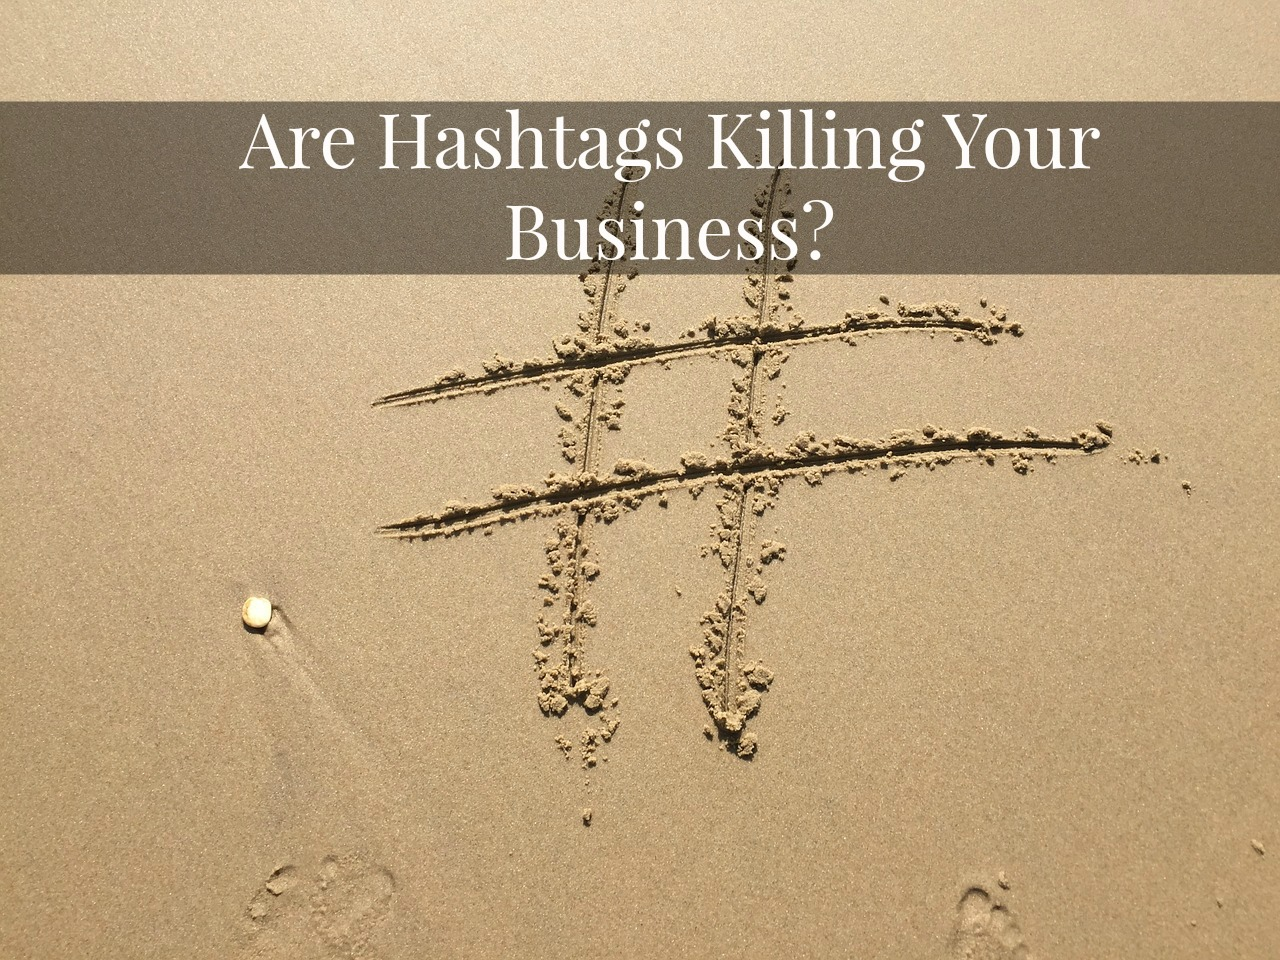 Beware: Network Marketing Hashtags Are Killing Your Business